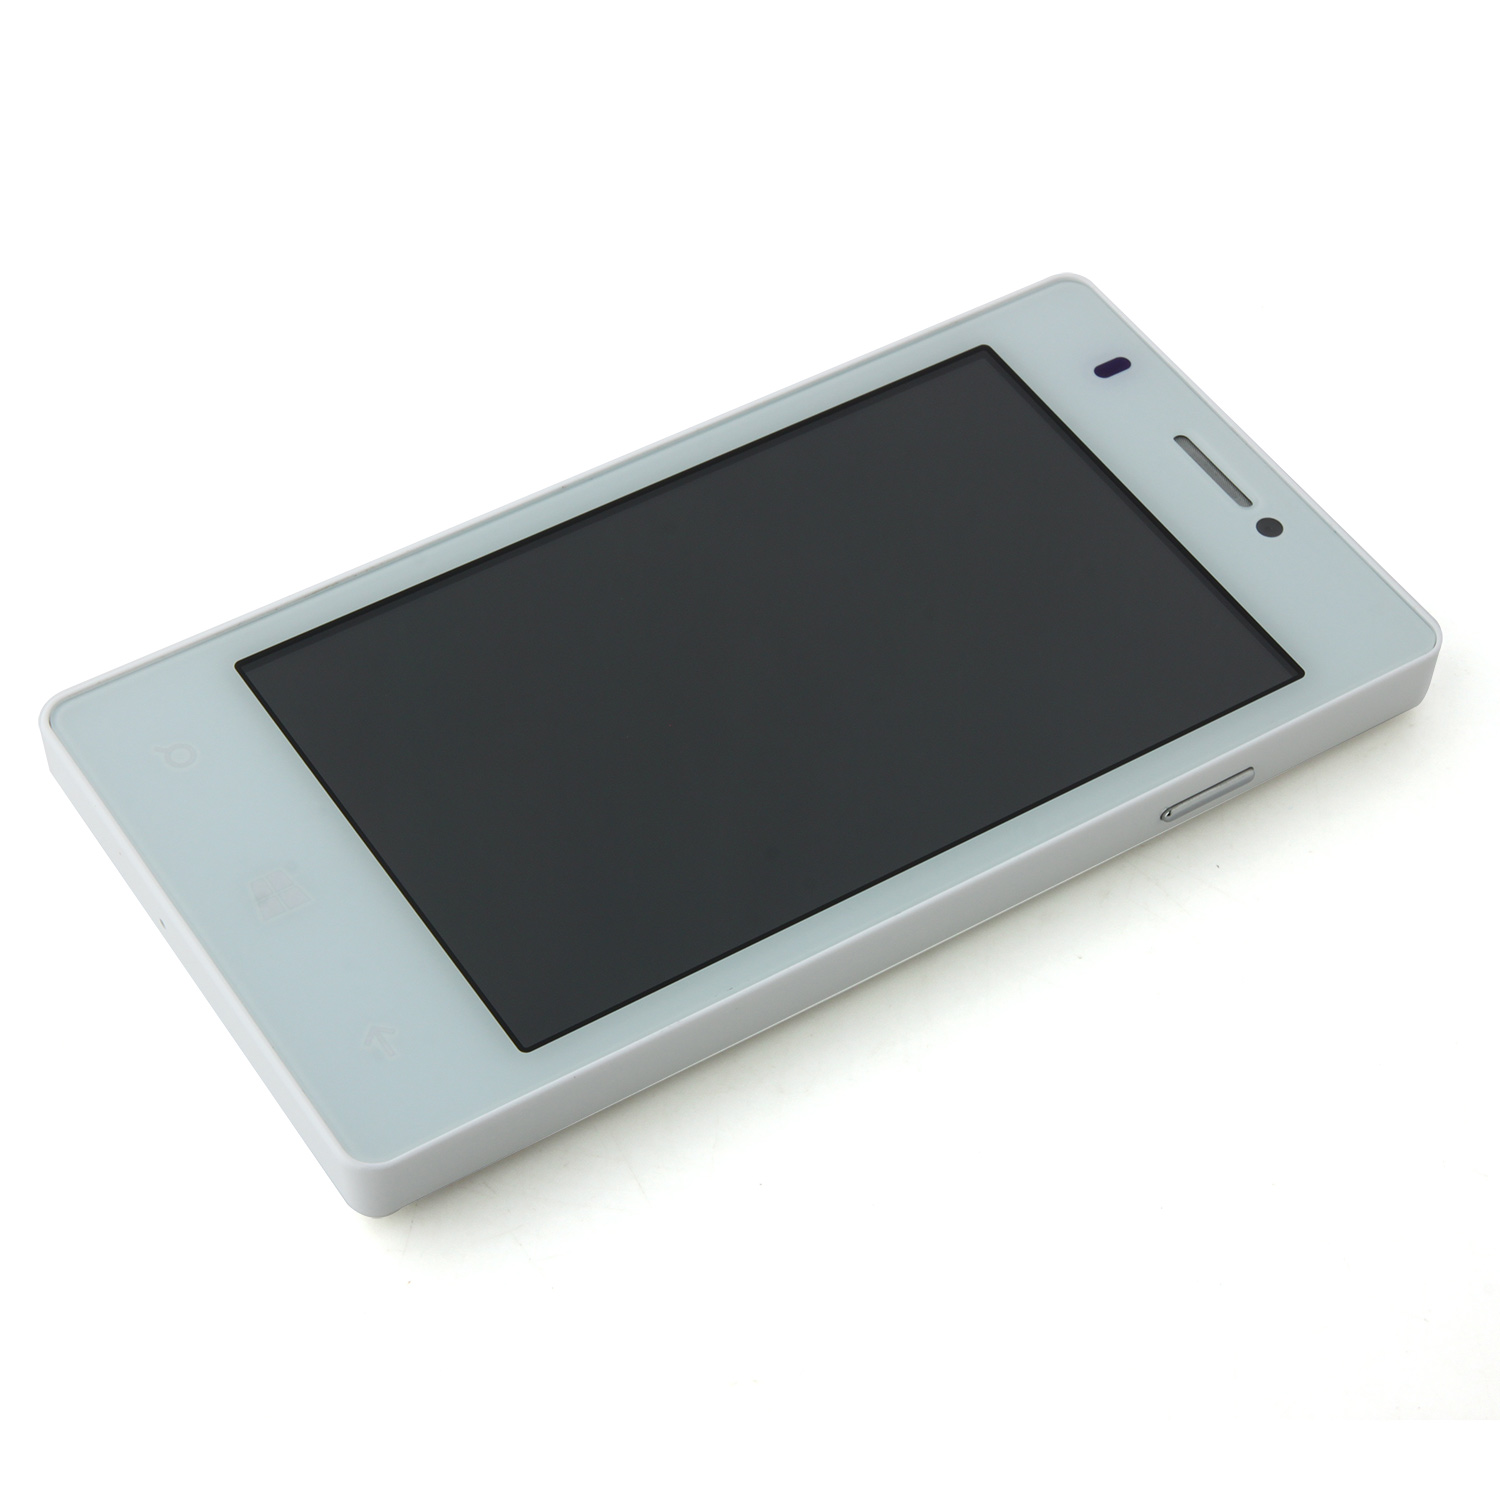 930 Smartphone Android 4.2 MTK6572W 4.0 Inch 3G GPS Play Store White